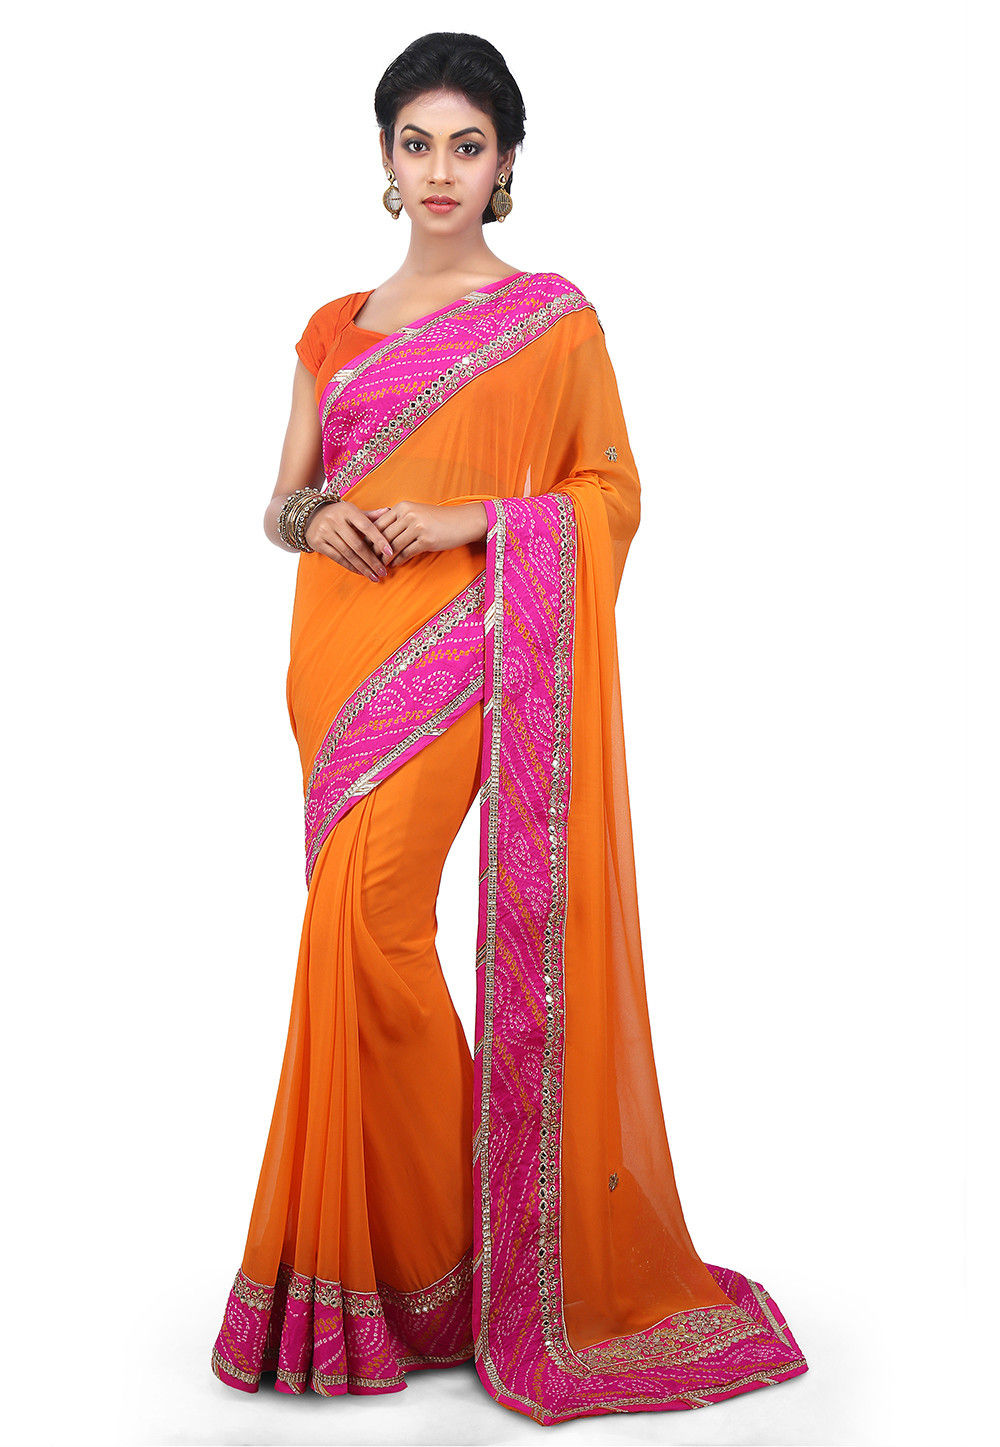 Contrast Patch Border Faux Georgette Saree in Orange